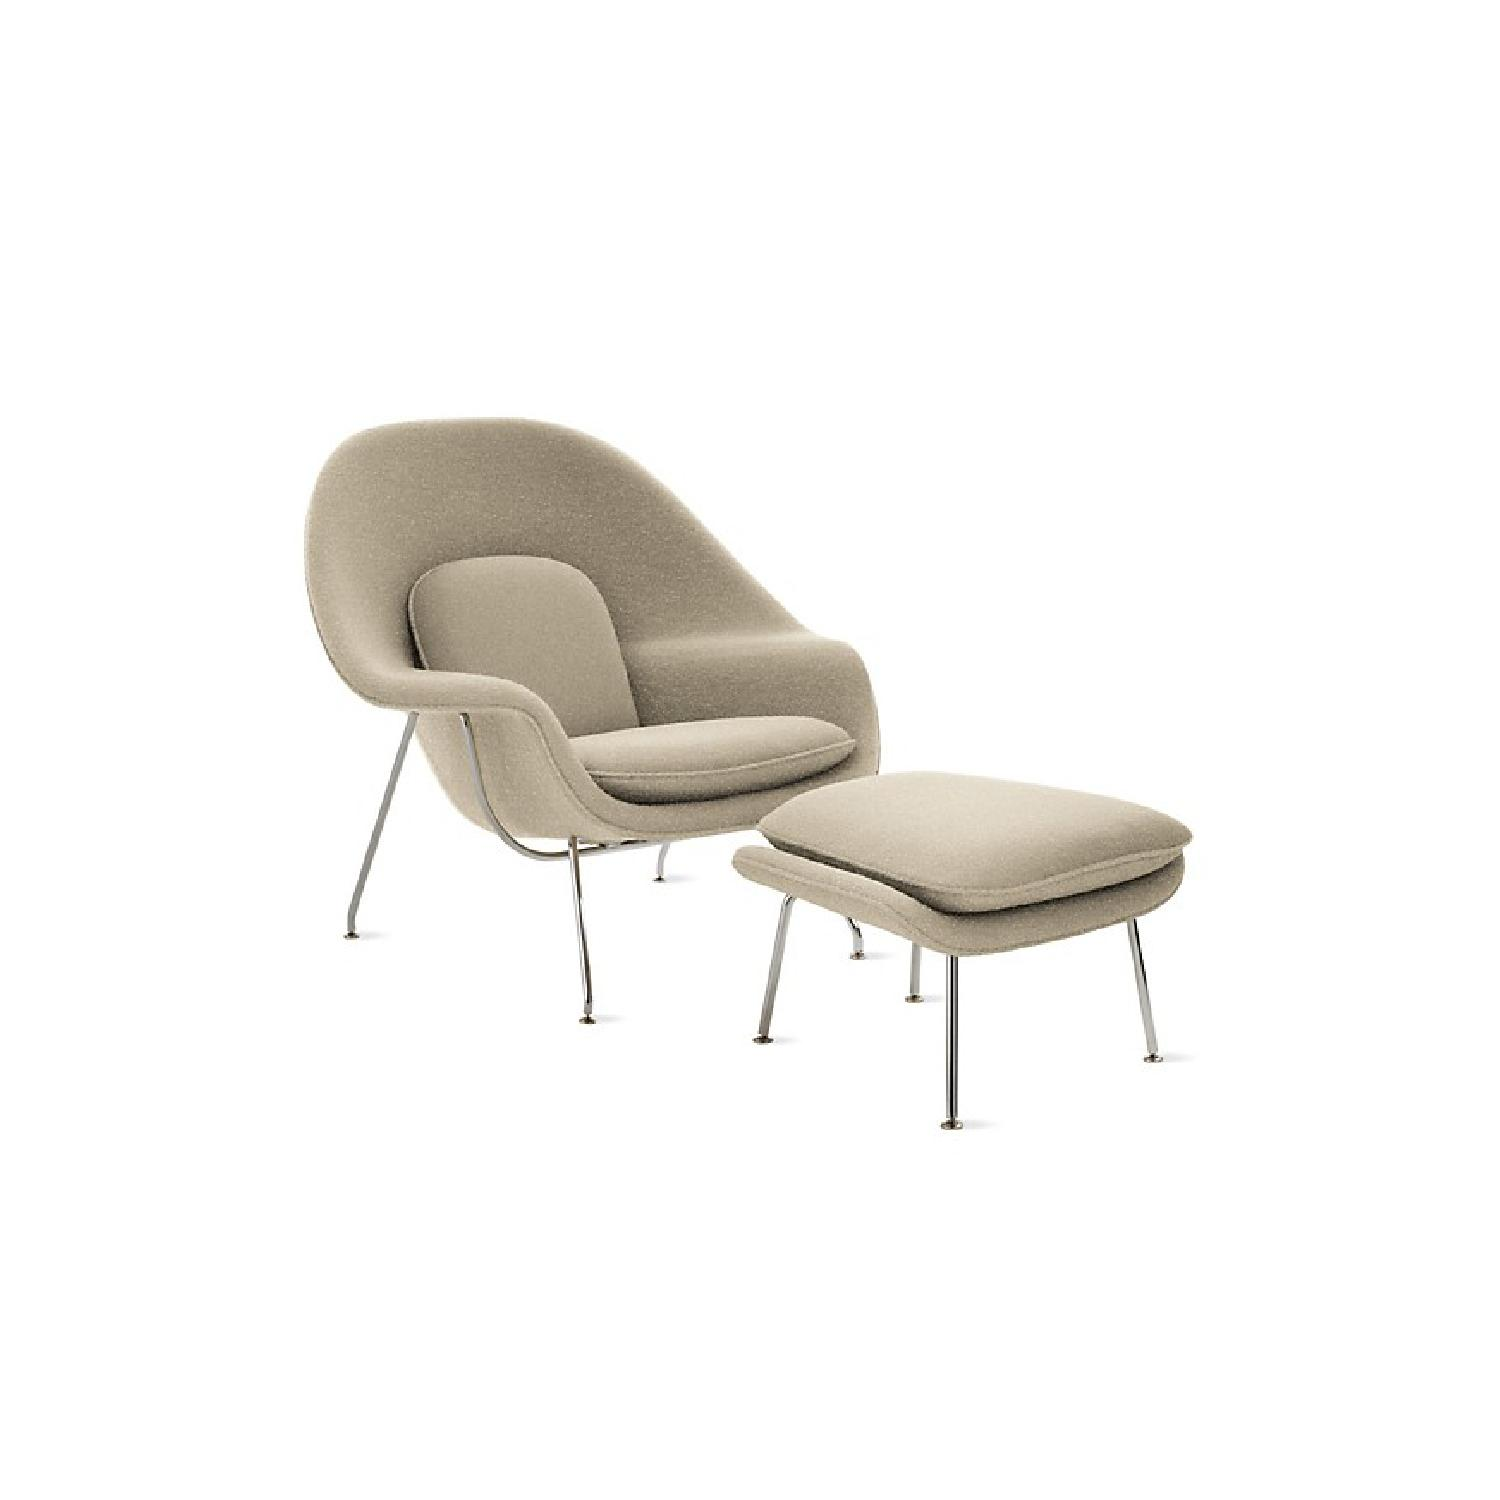 Knoll Saarinen Womb Chair U0026 Ottoman In Boucle Nuetral ...